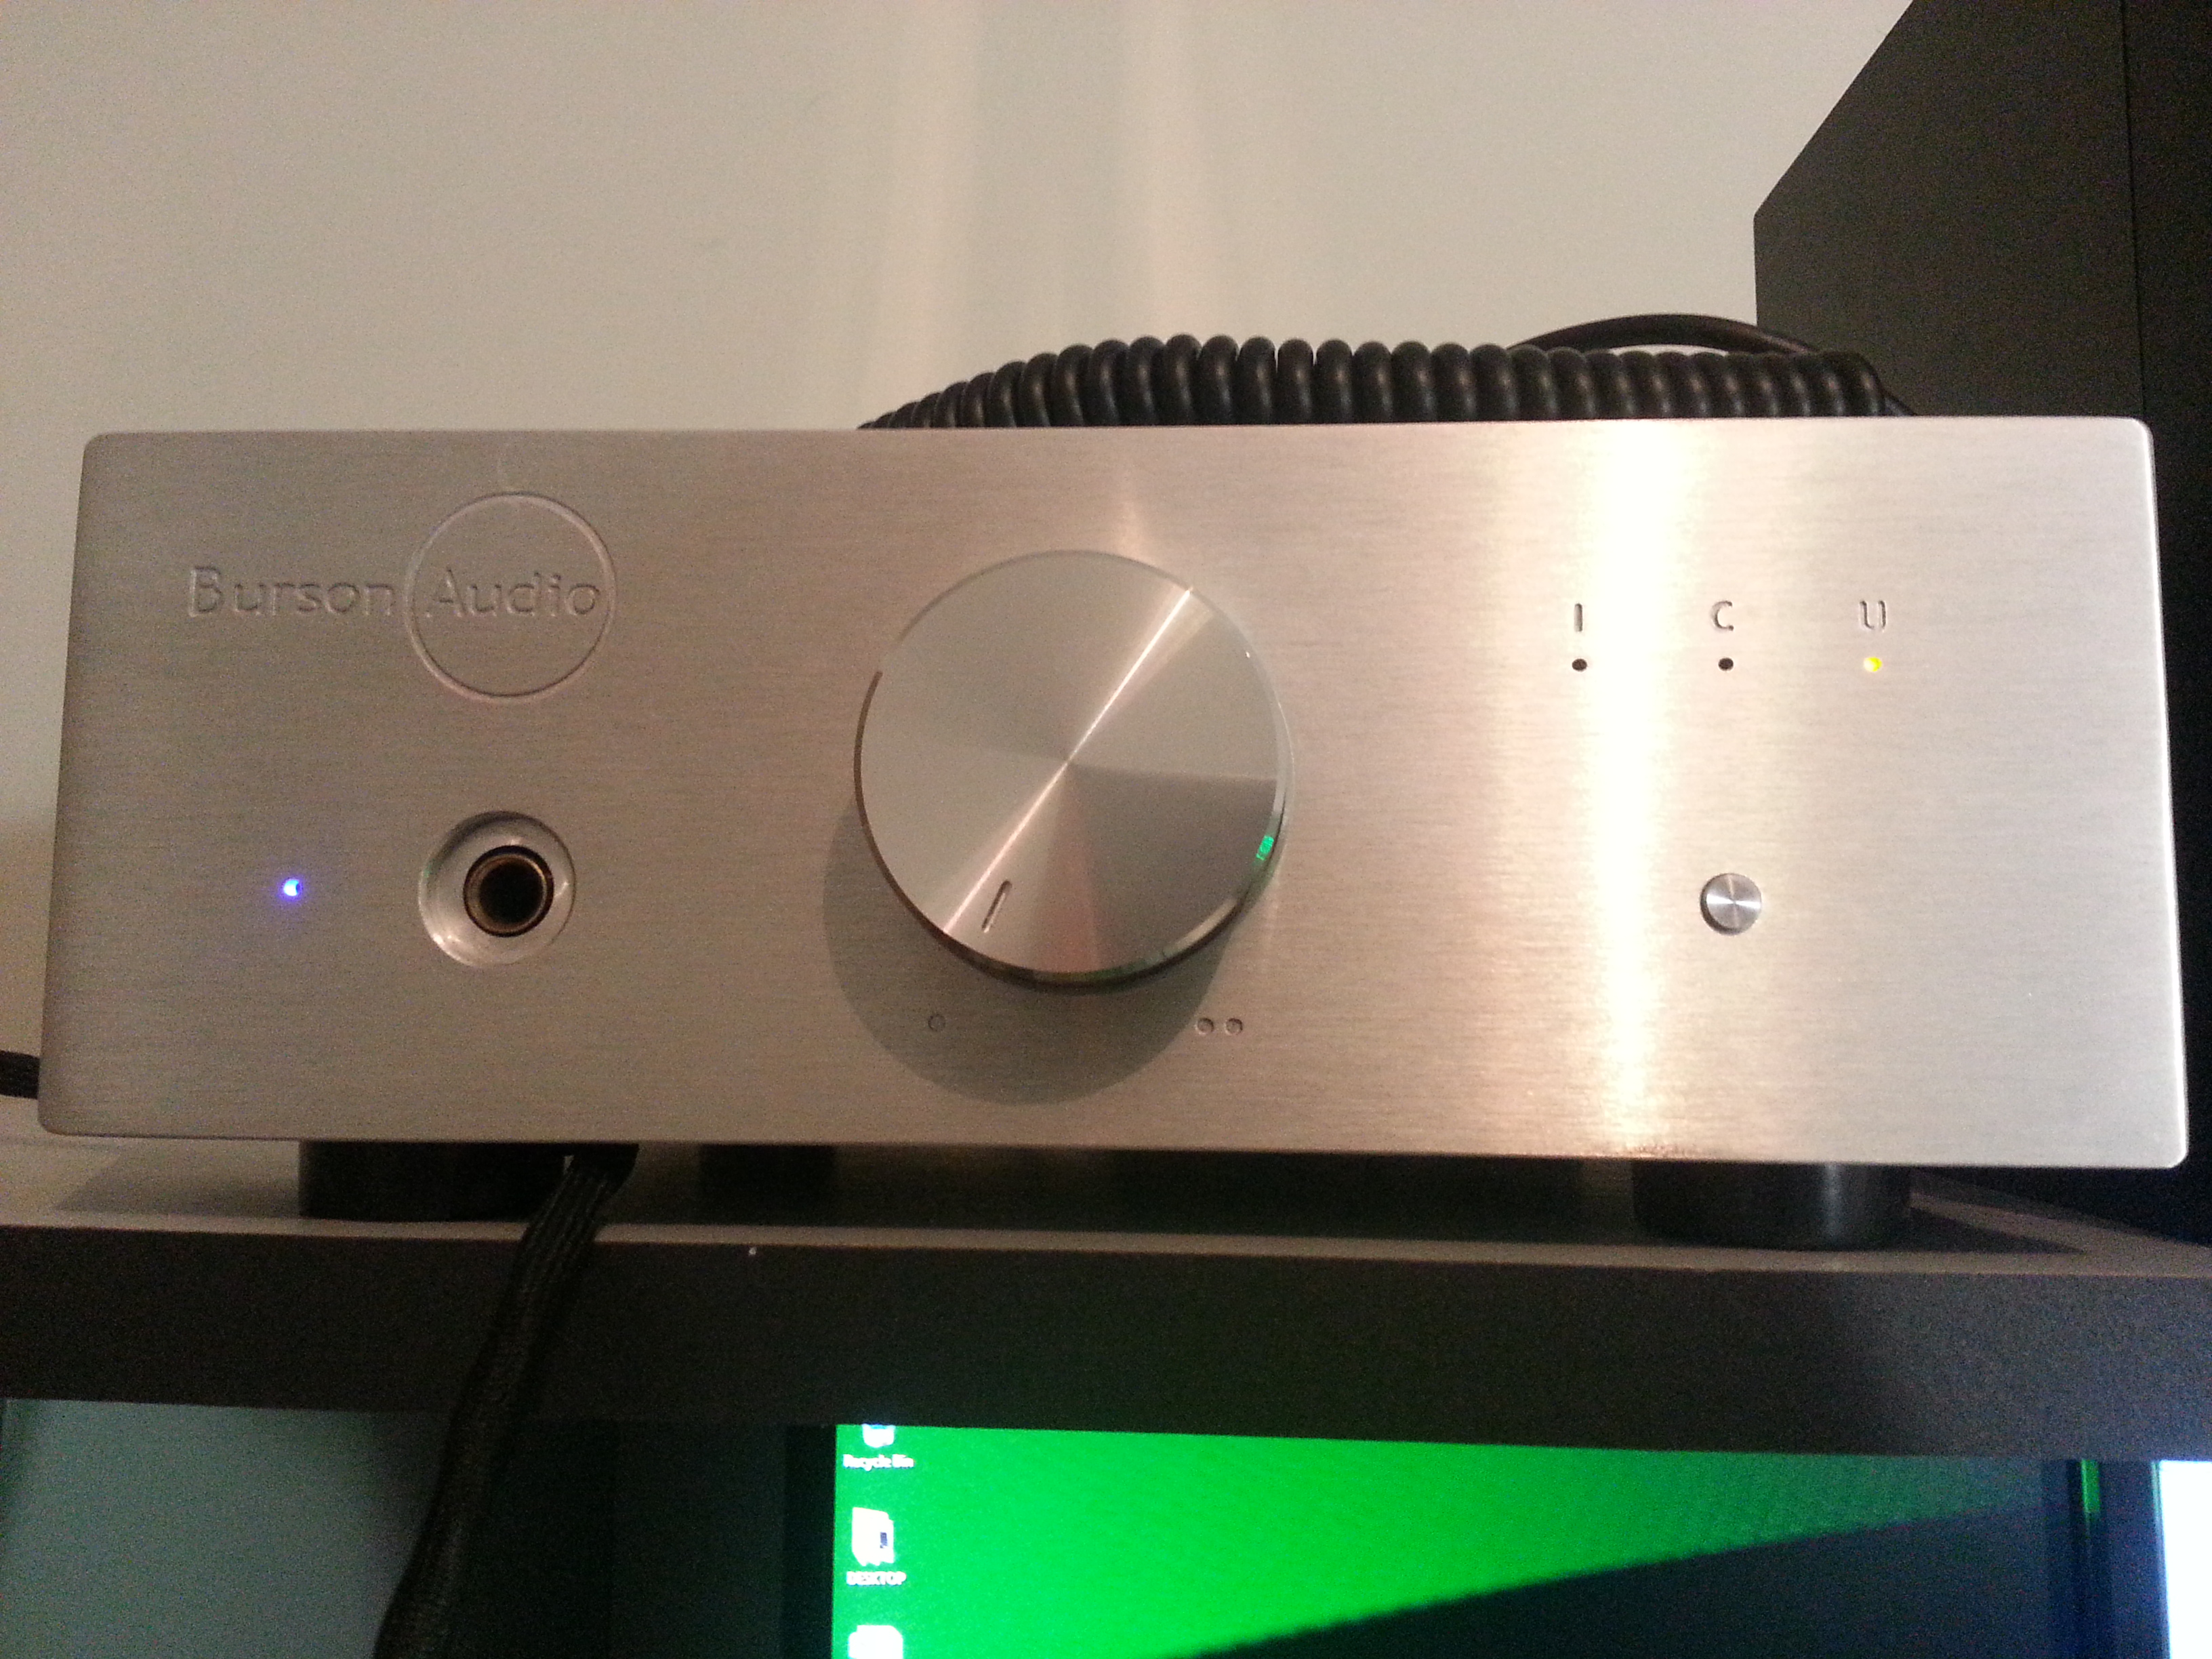 Burson Audio HA-160ds